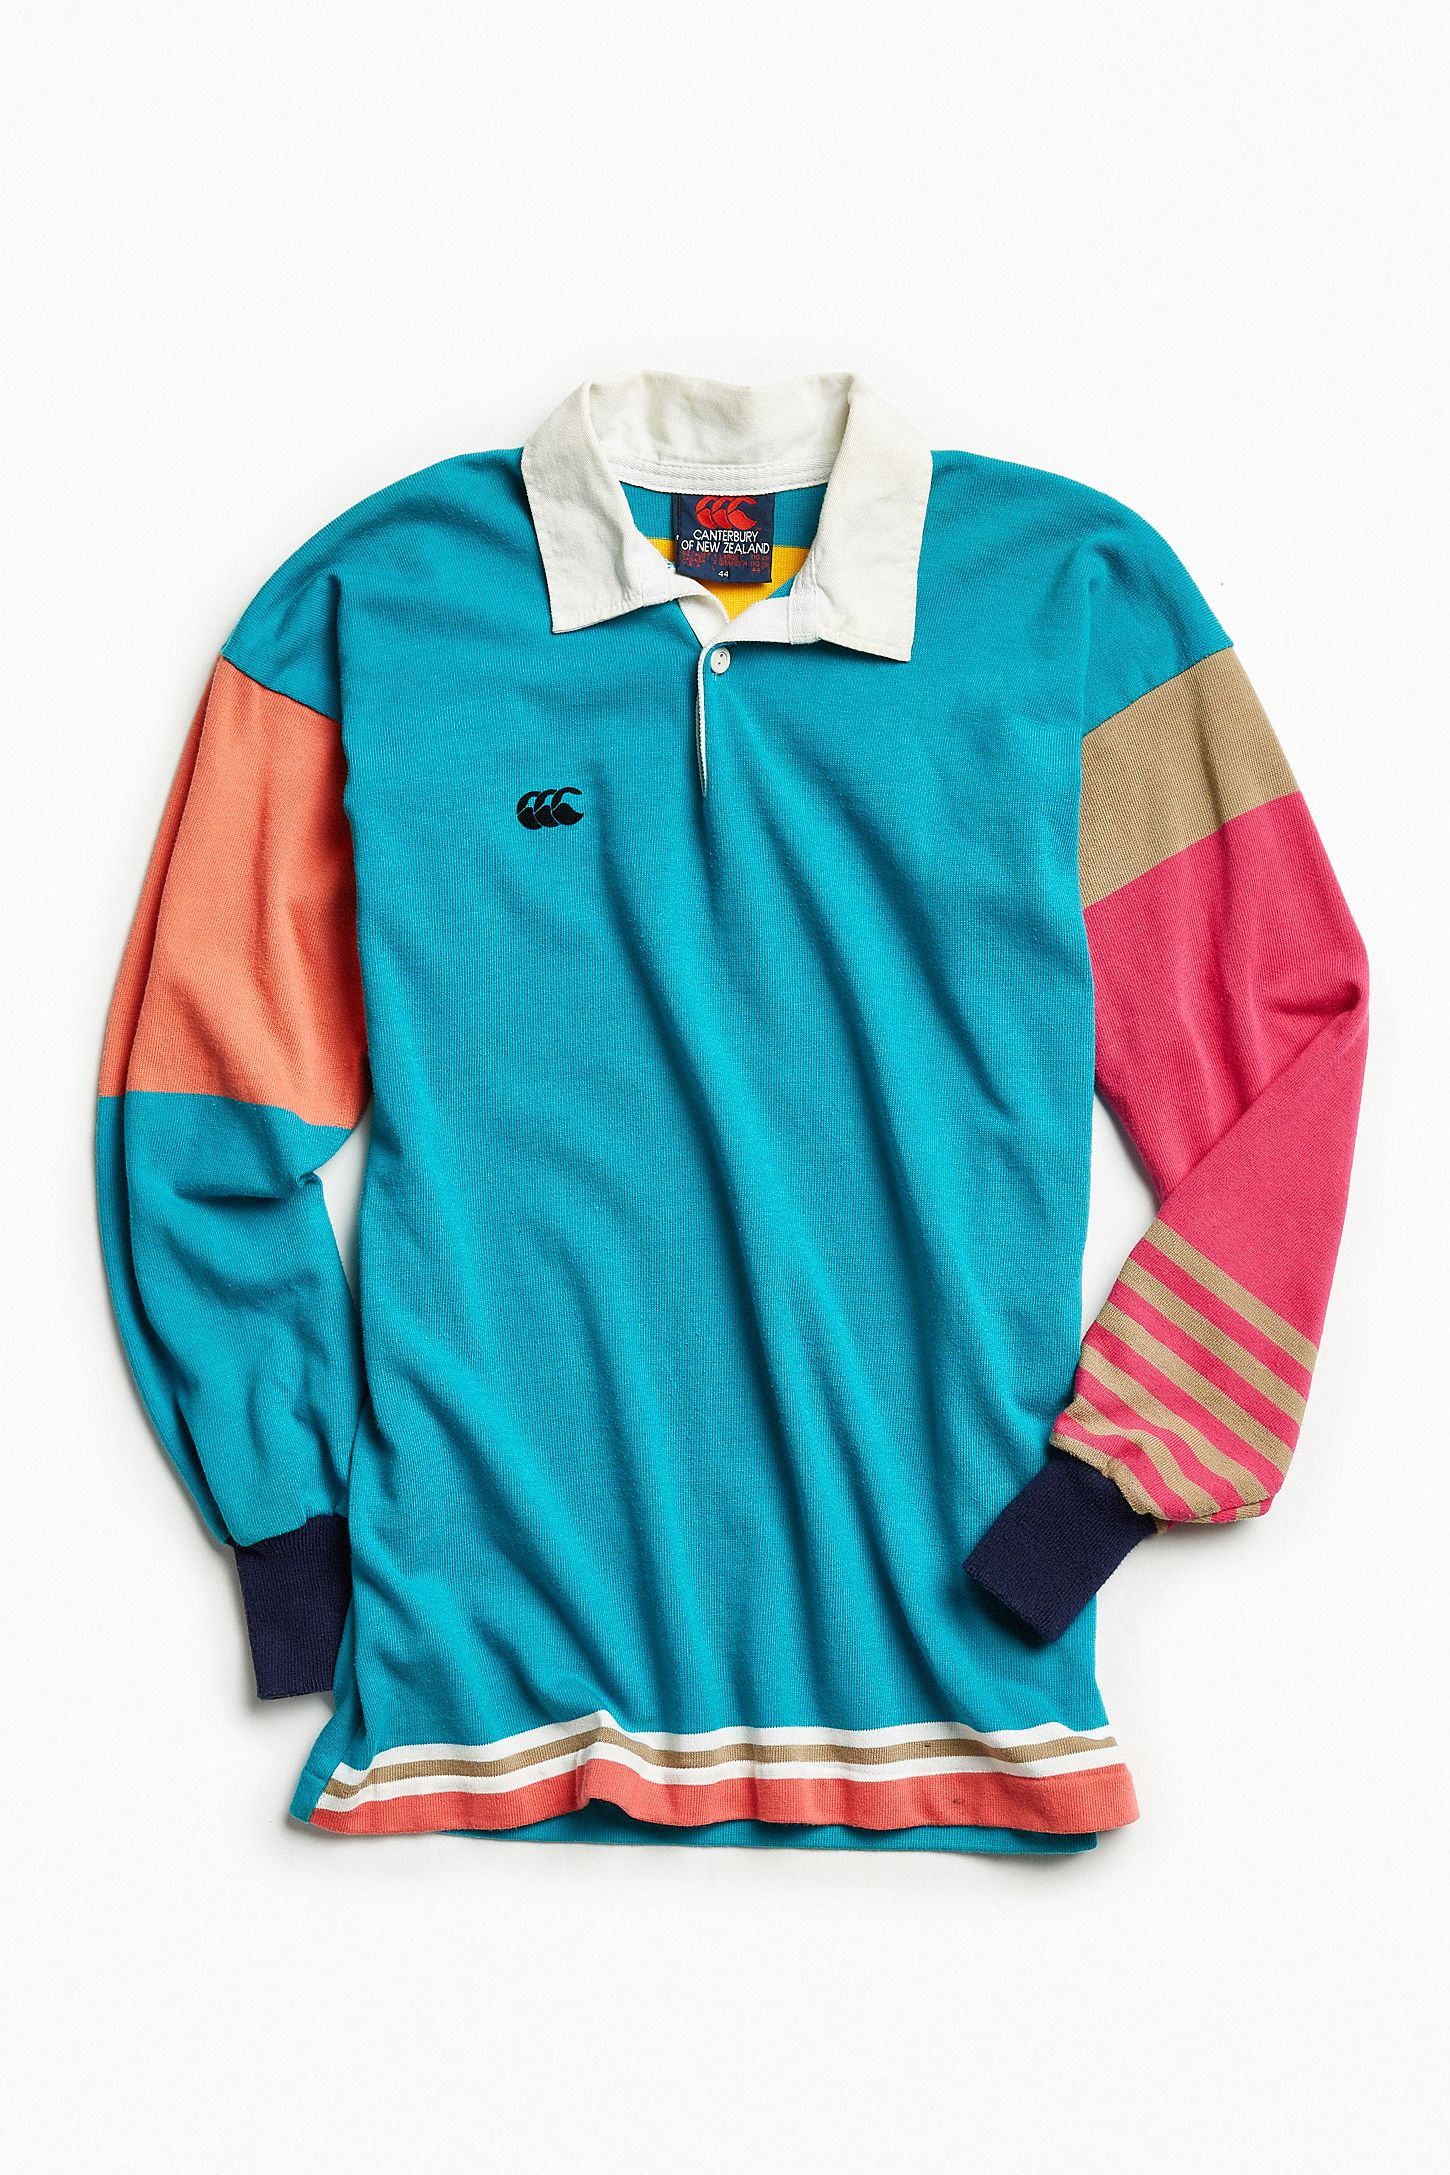 61396a9a83c Vintage Canterbury New Zealand Teal Rugby Shirt | Urban Outfitters